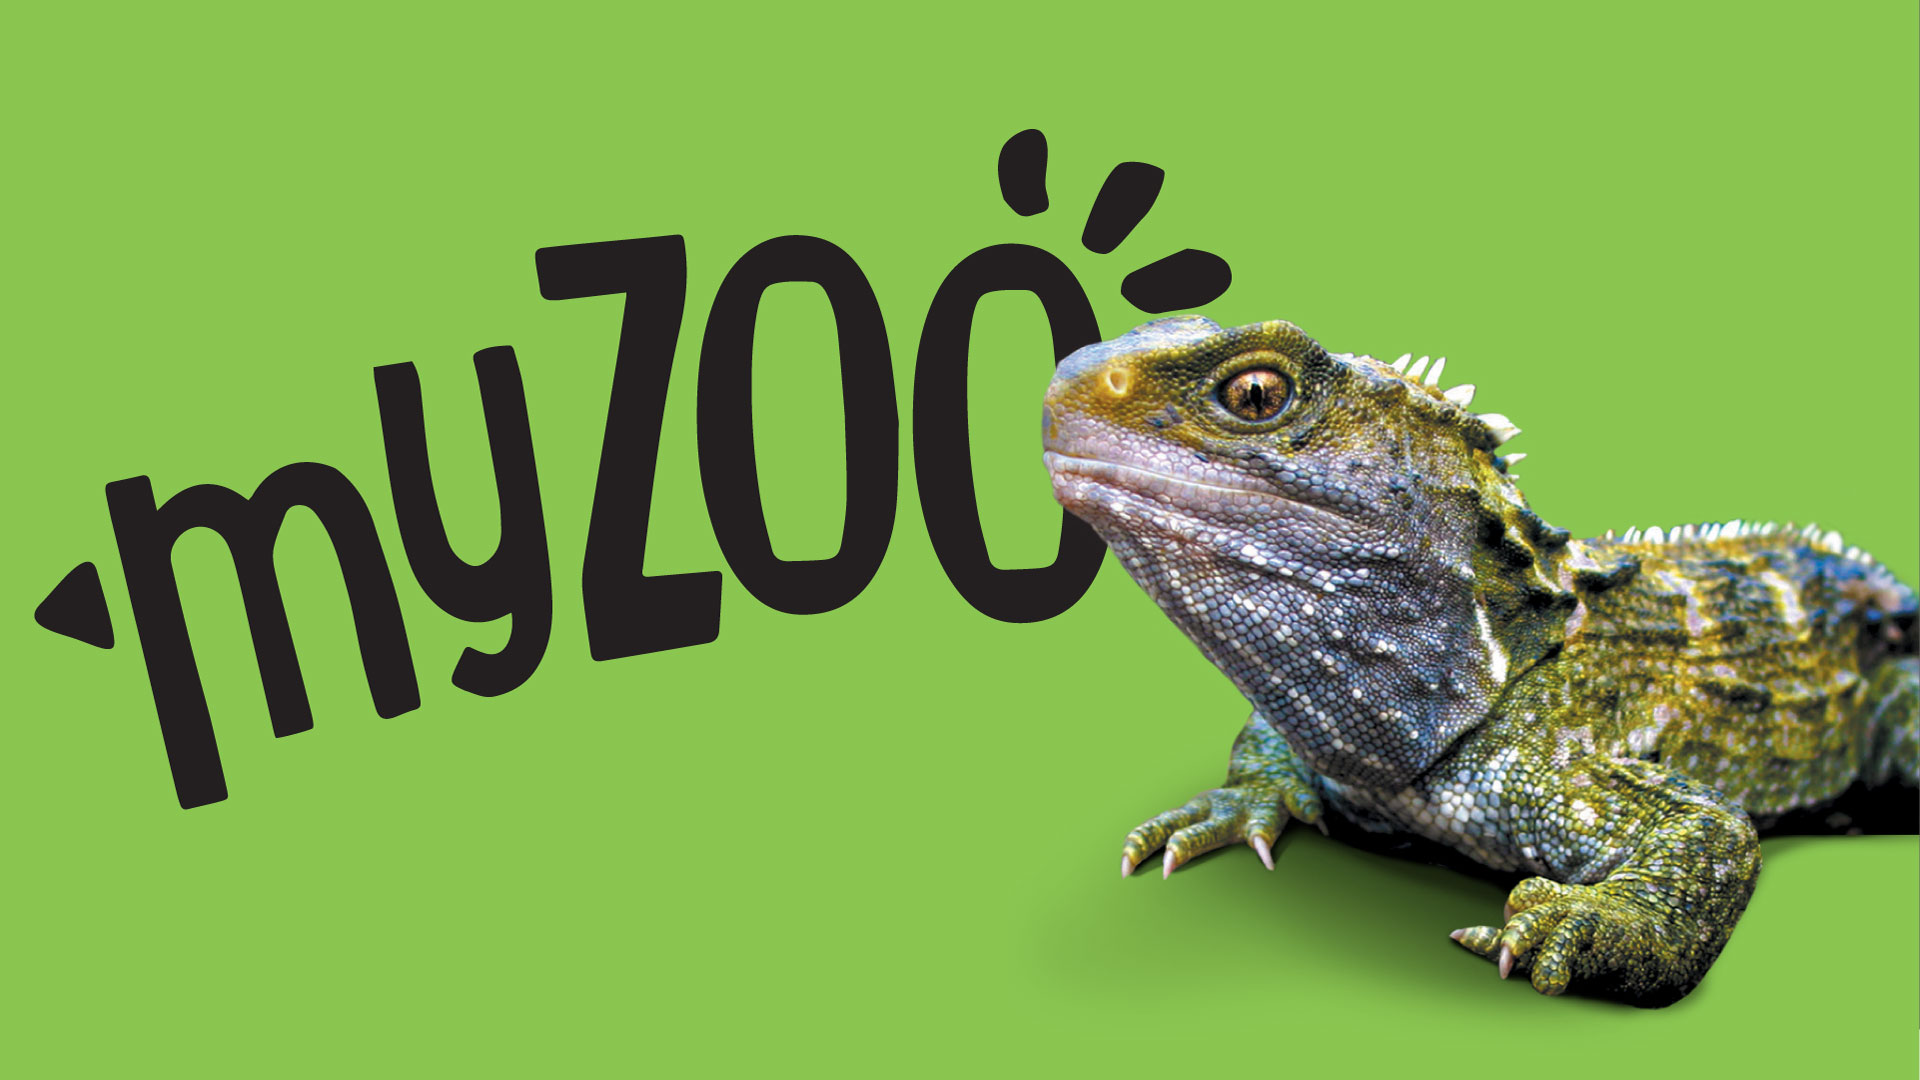 https://rfacdn.nz/zoo/assets/media/azoo-myzoo-tuatara.jpg